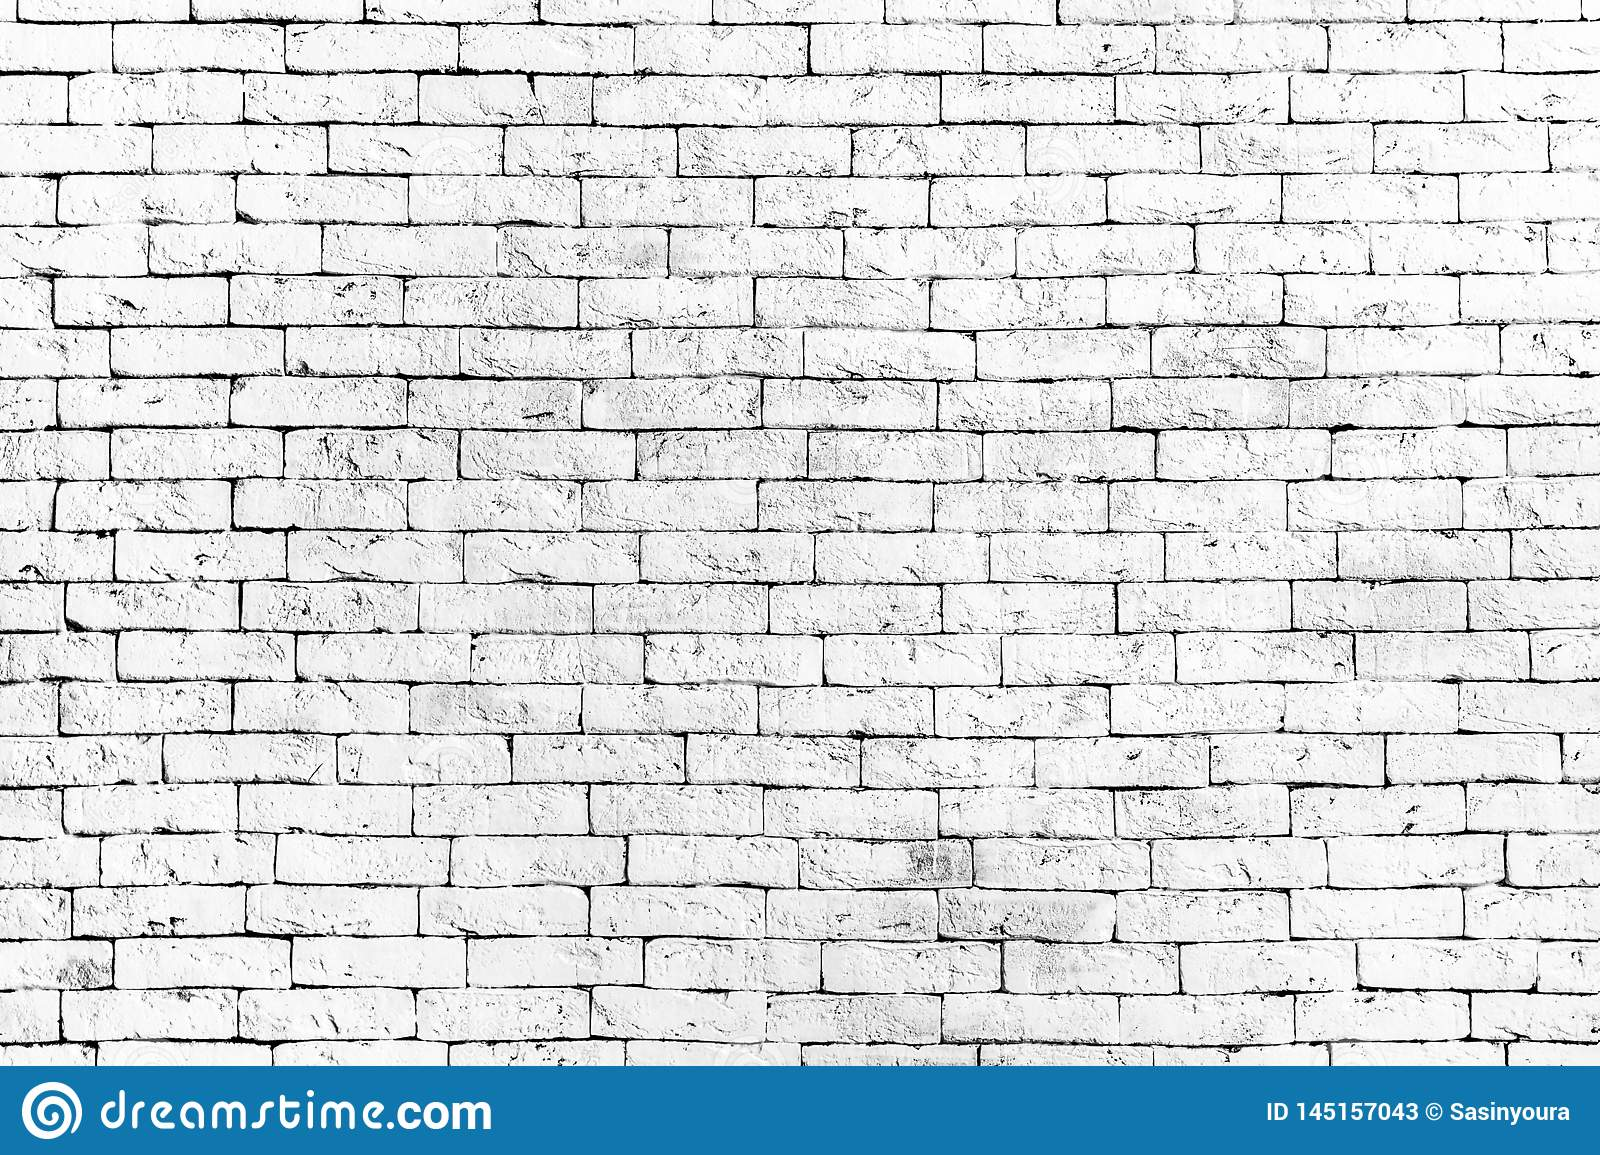 Wall of old white brick, grunge style background texture, can use for design.